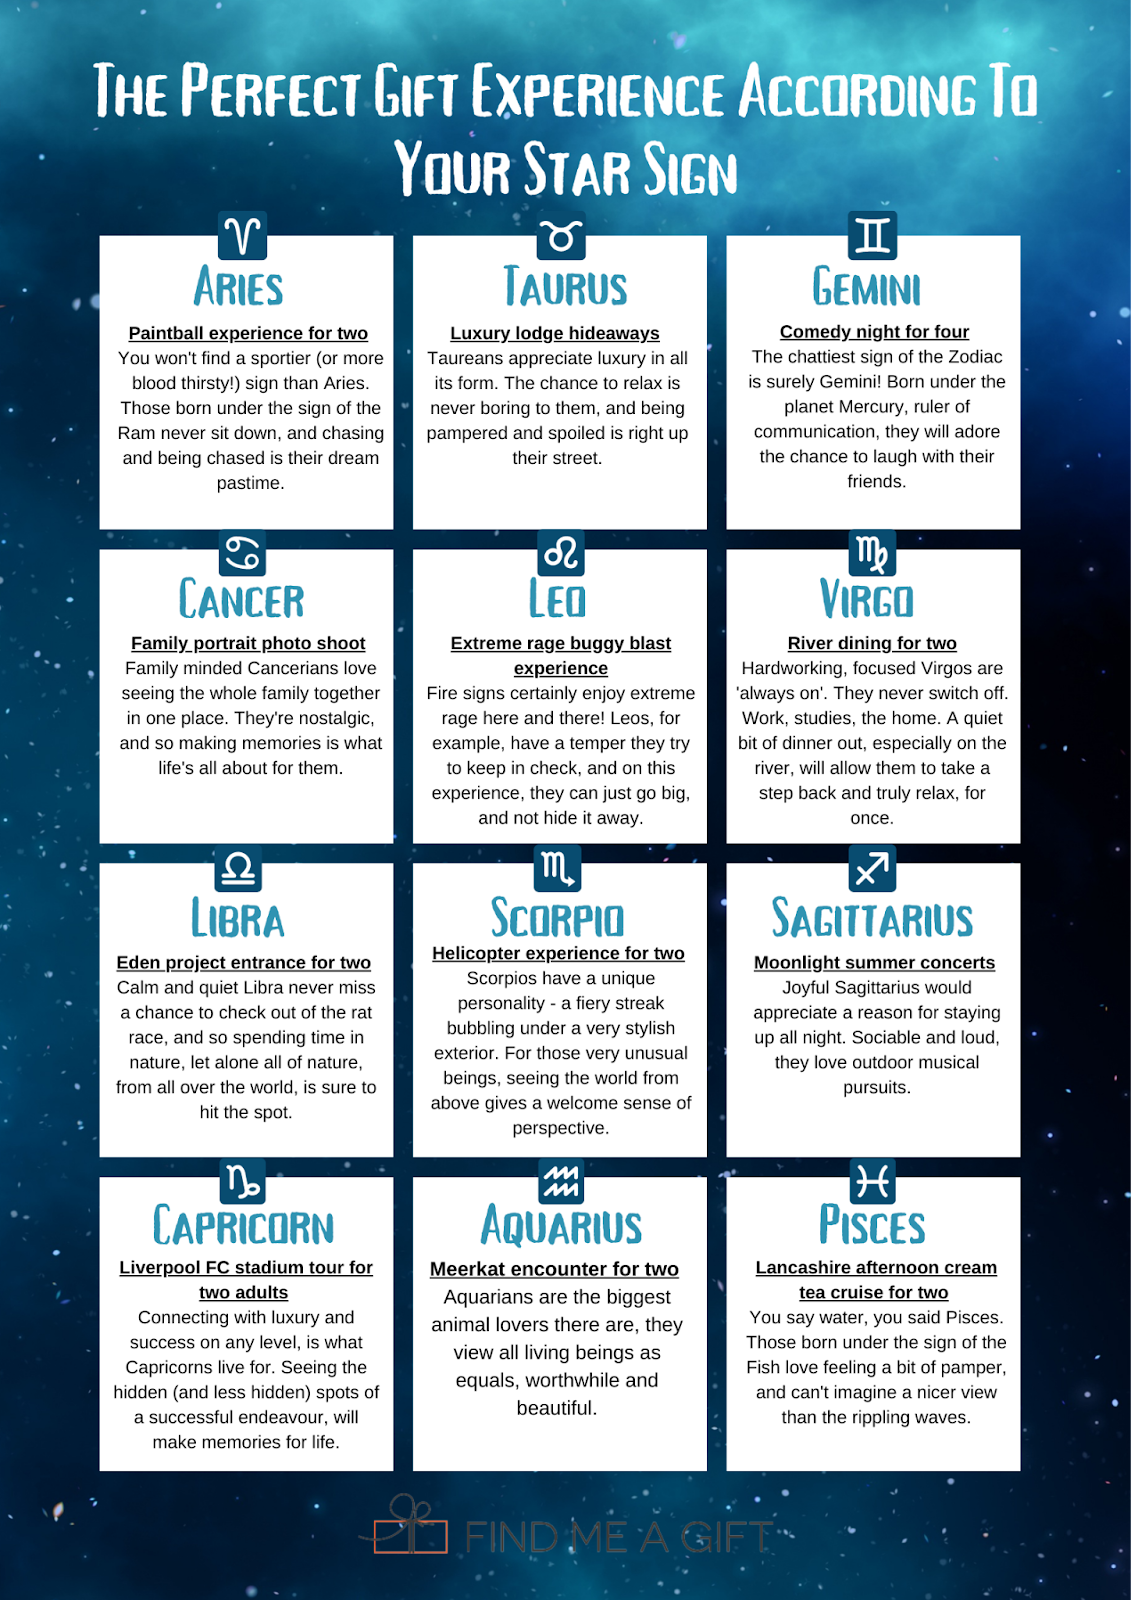 Experience Gifts Based On Your Star Sign